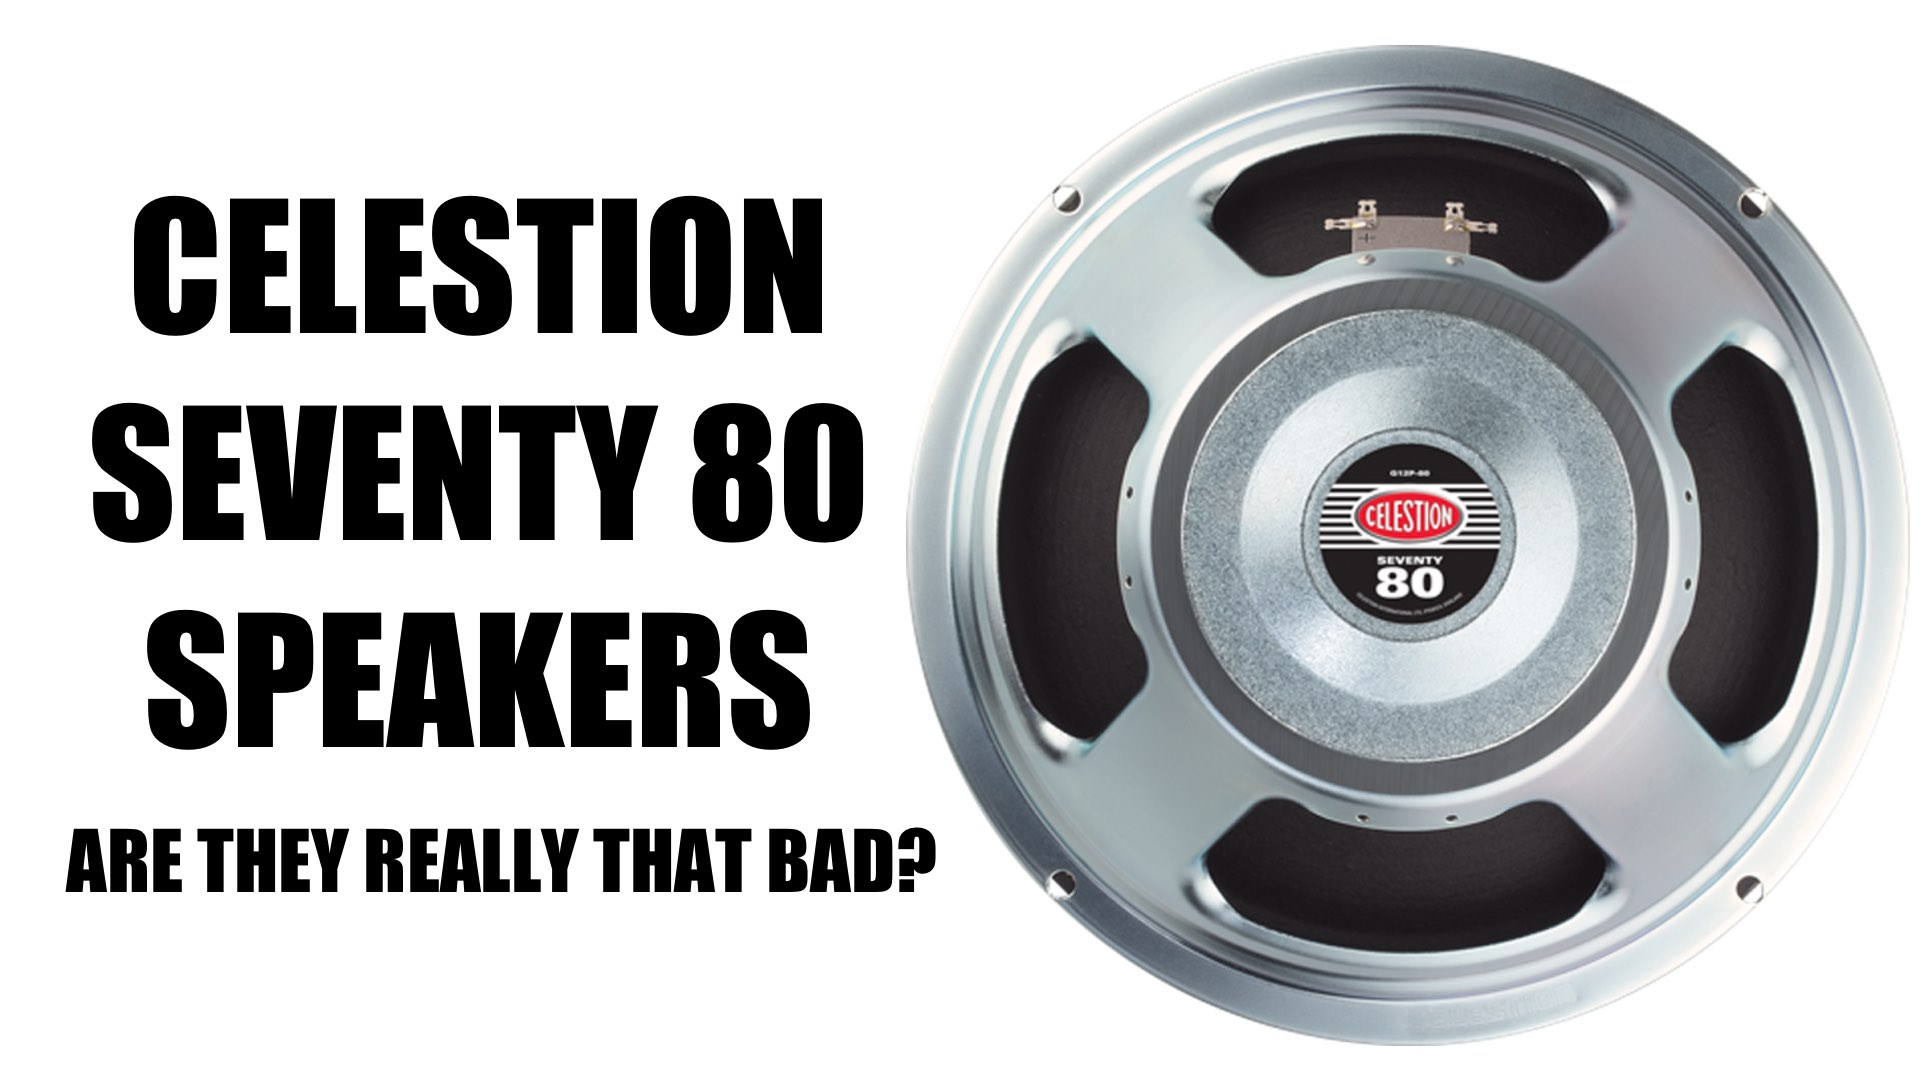 Are Celestion Seventy 80 Speakers Really That Bad?